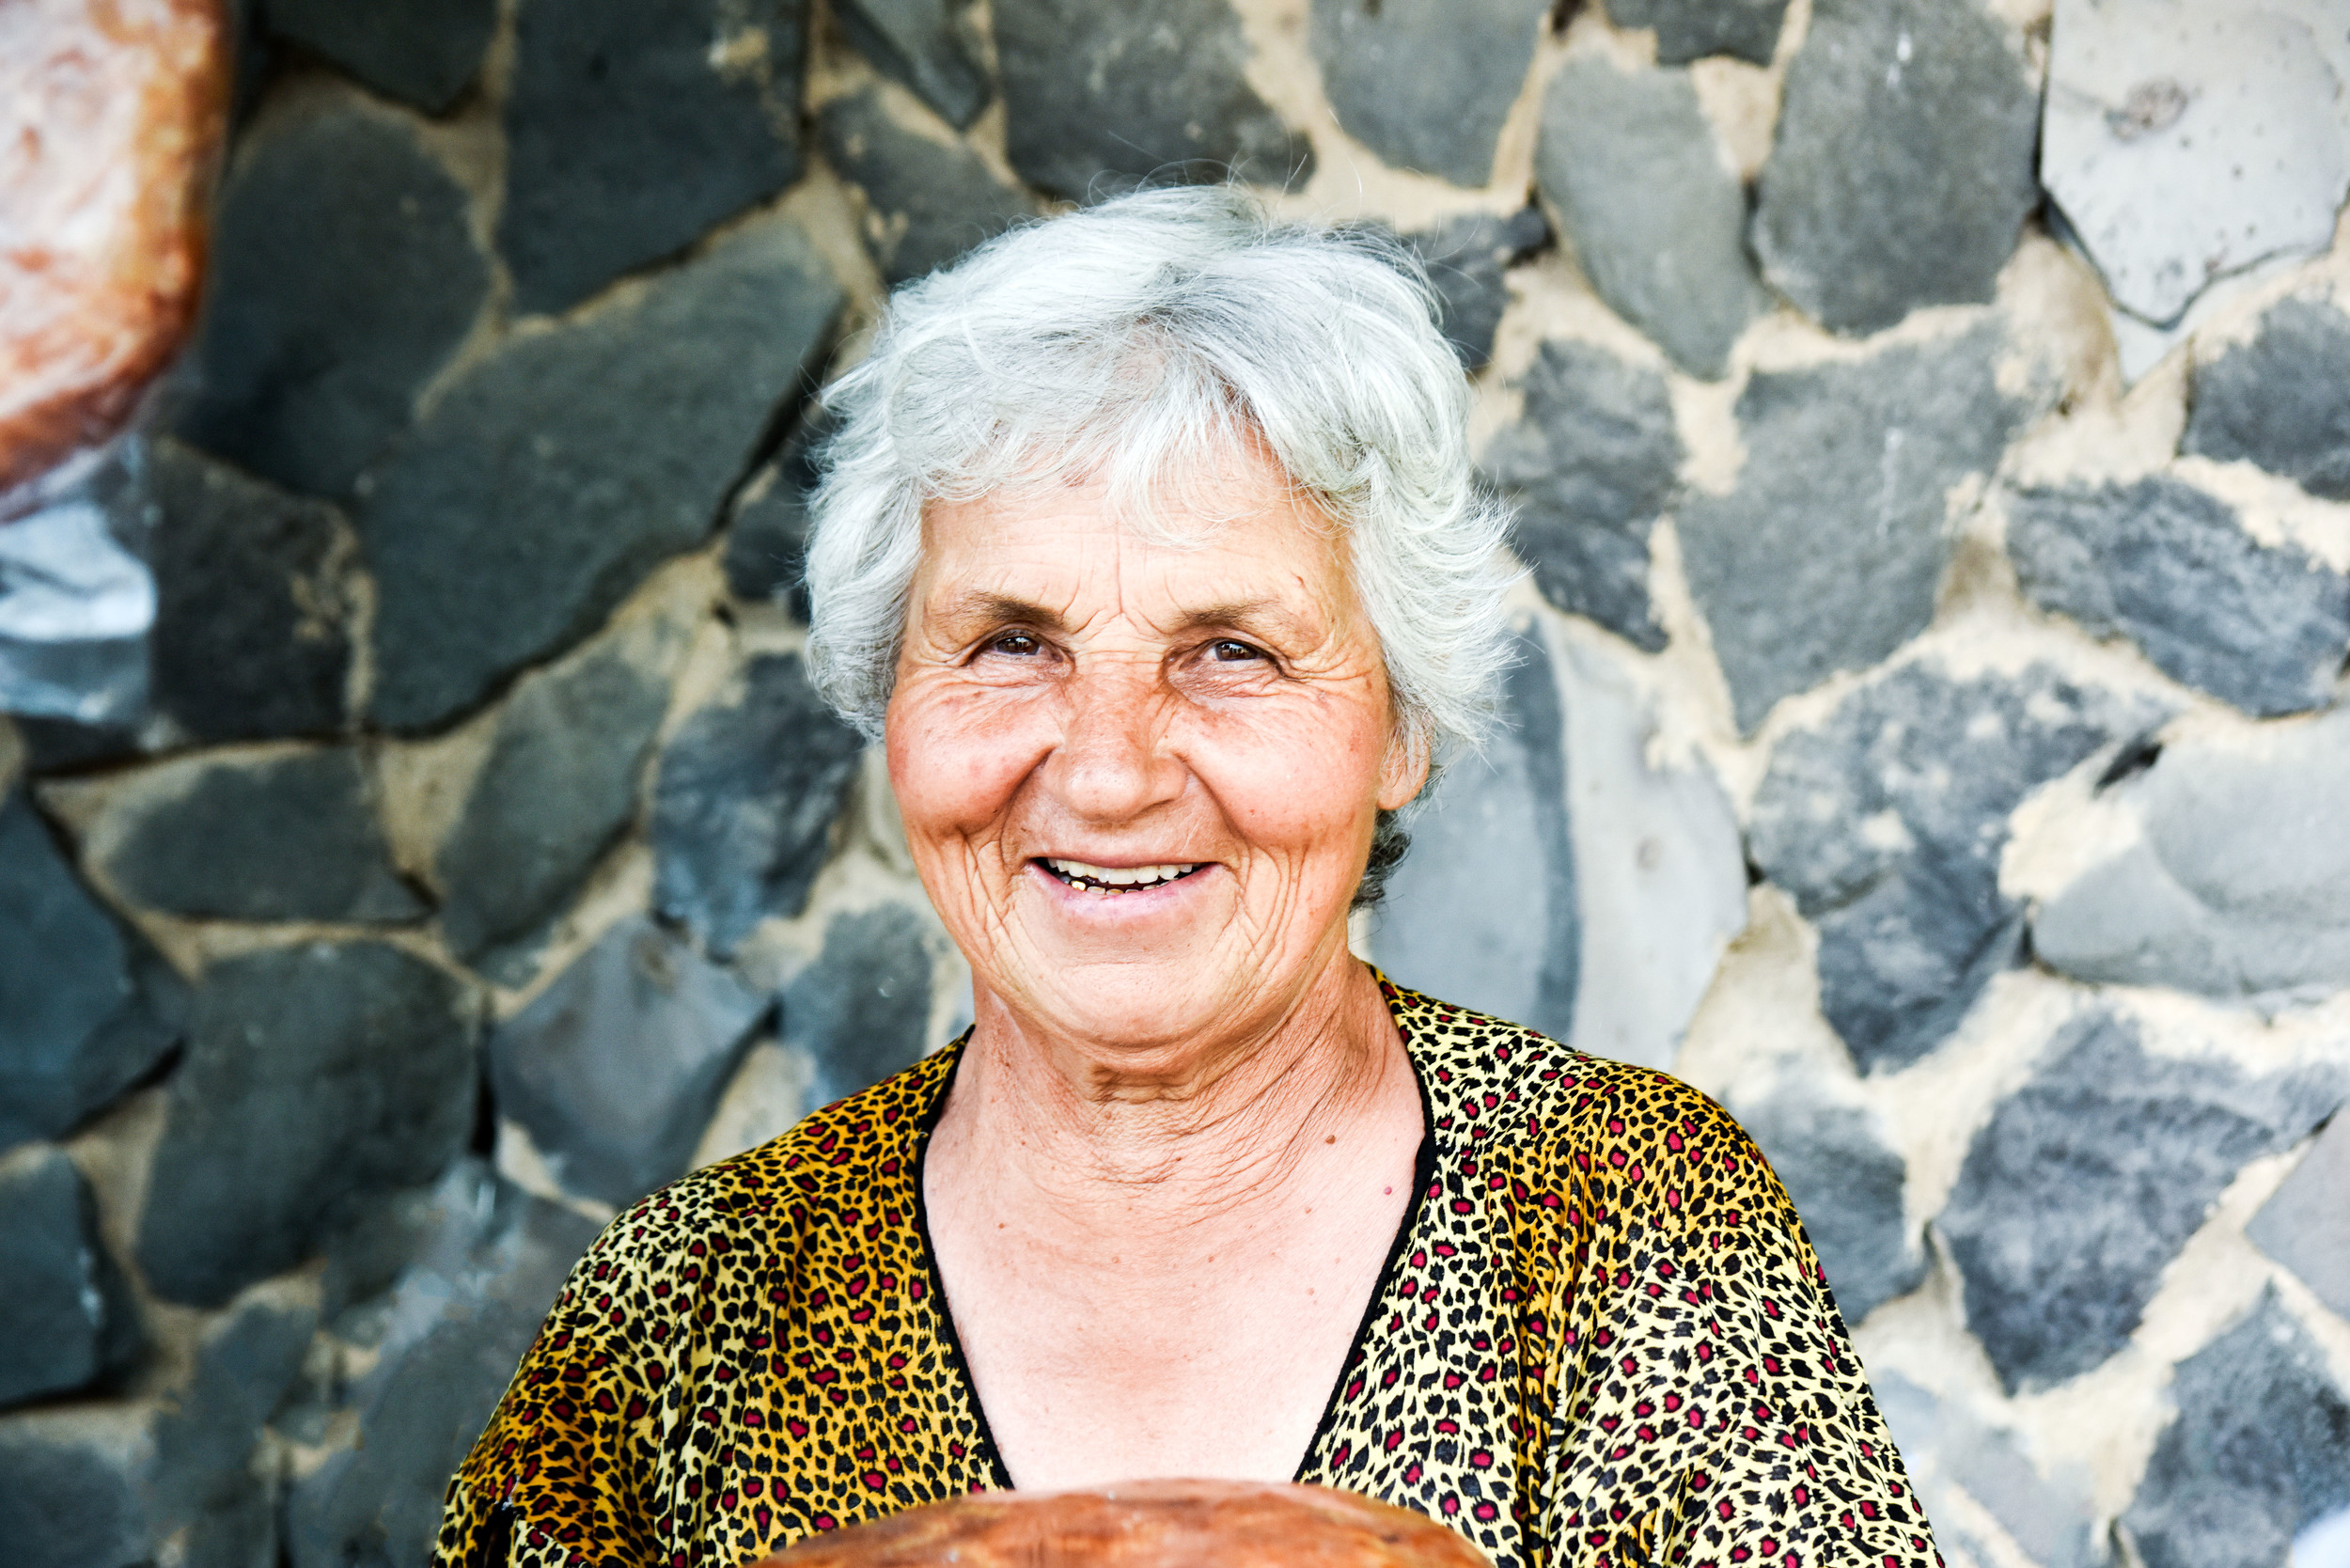 One of the ladies selling Gata, and one of the many amazing people we met in Armenia